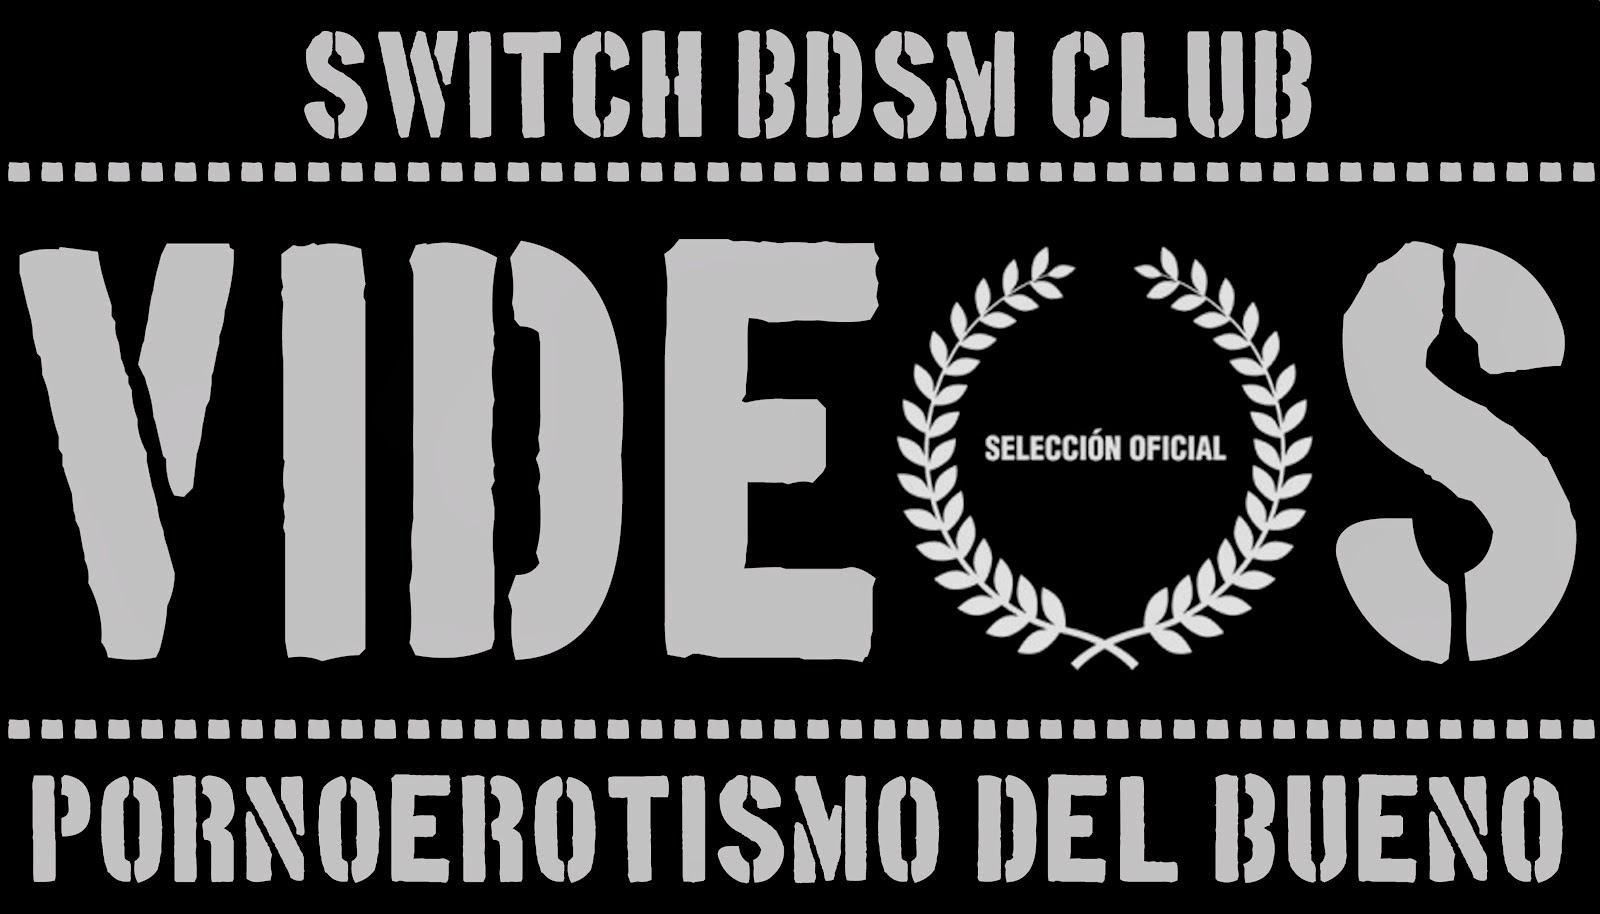 Switch BDSM Club [video selection]